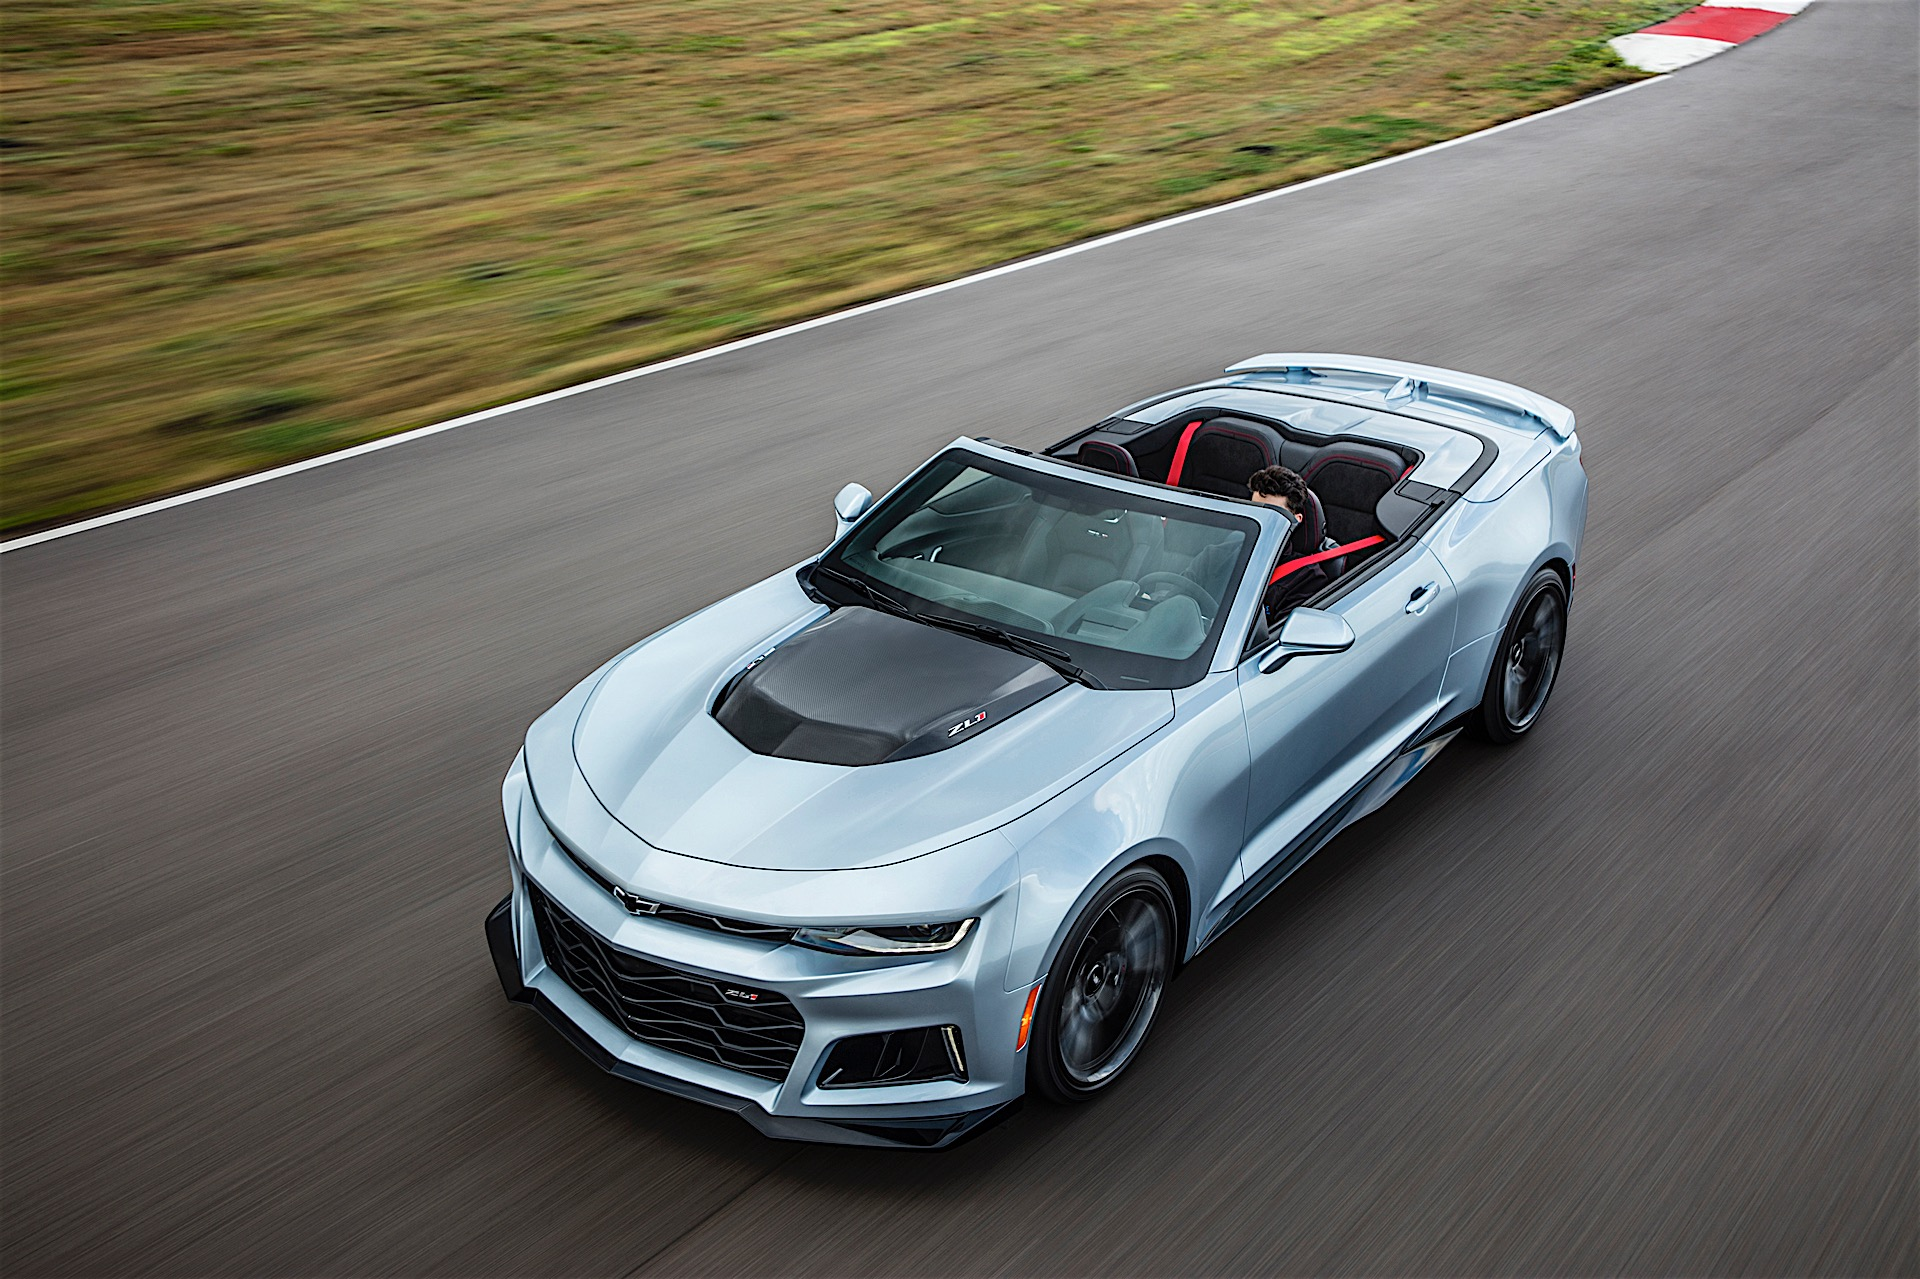 2017 Chevrolet Camaro Zl1 Convertible Brings Its Soft Top